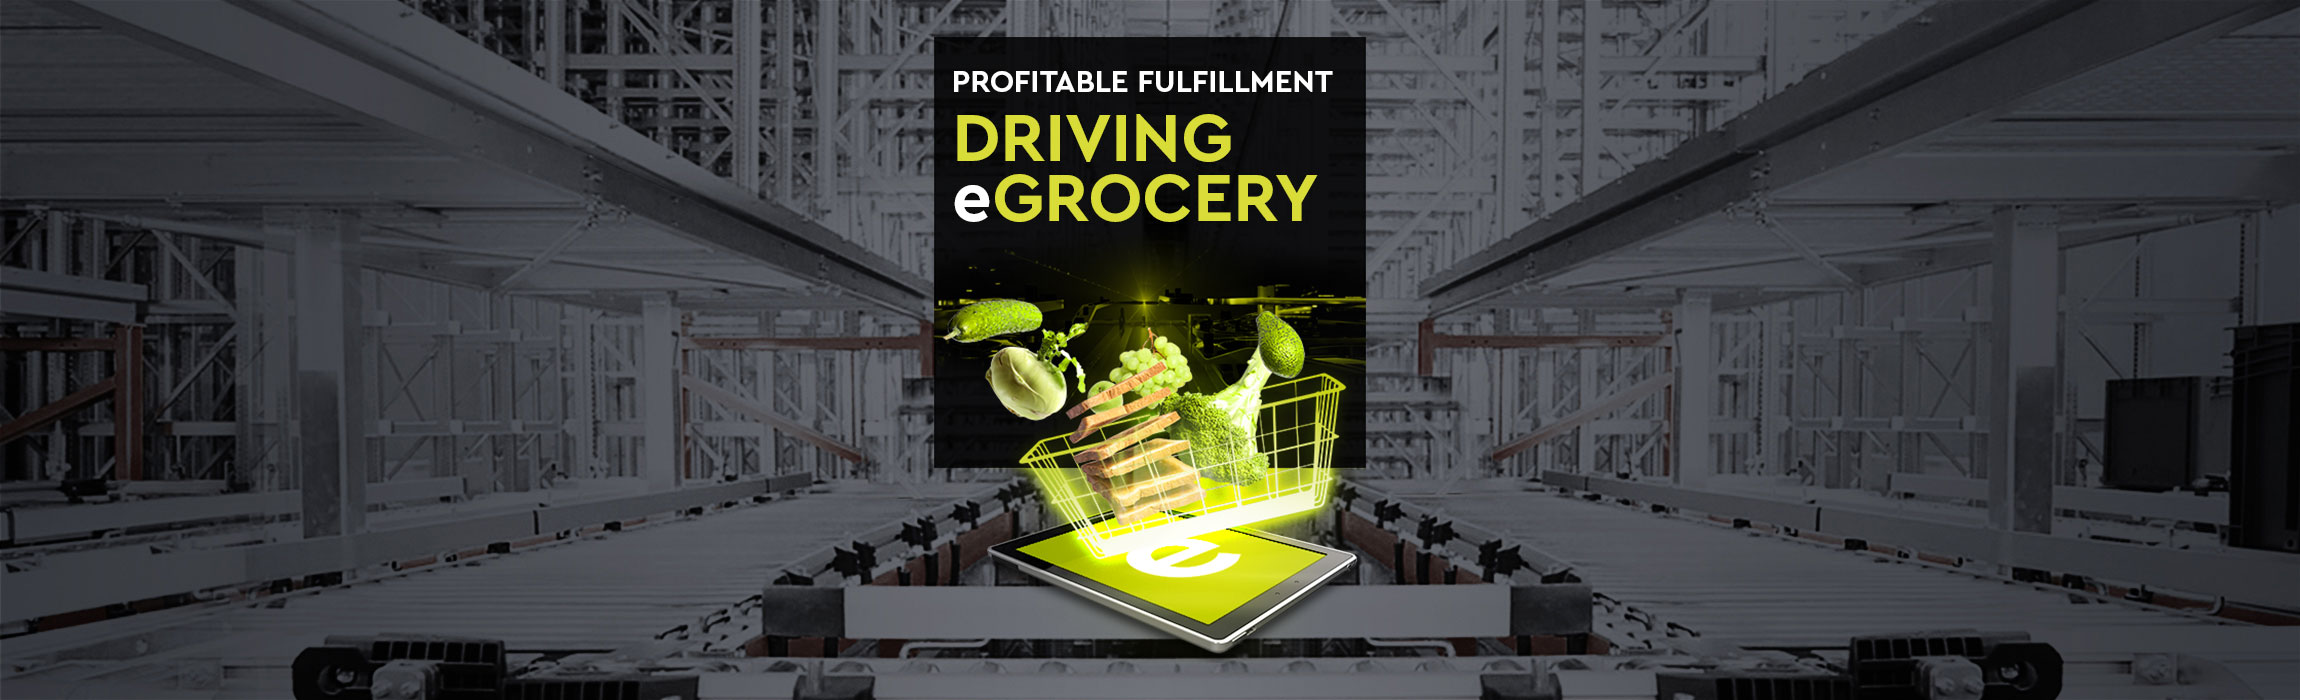 Come along as we journey into the world of online grocery retail in the eGrocery edition.